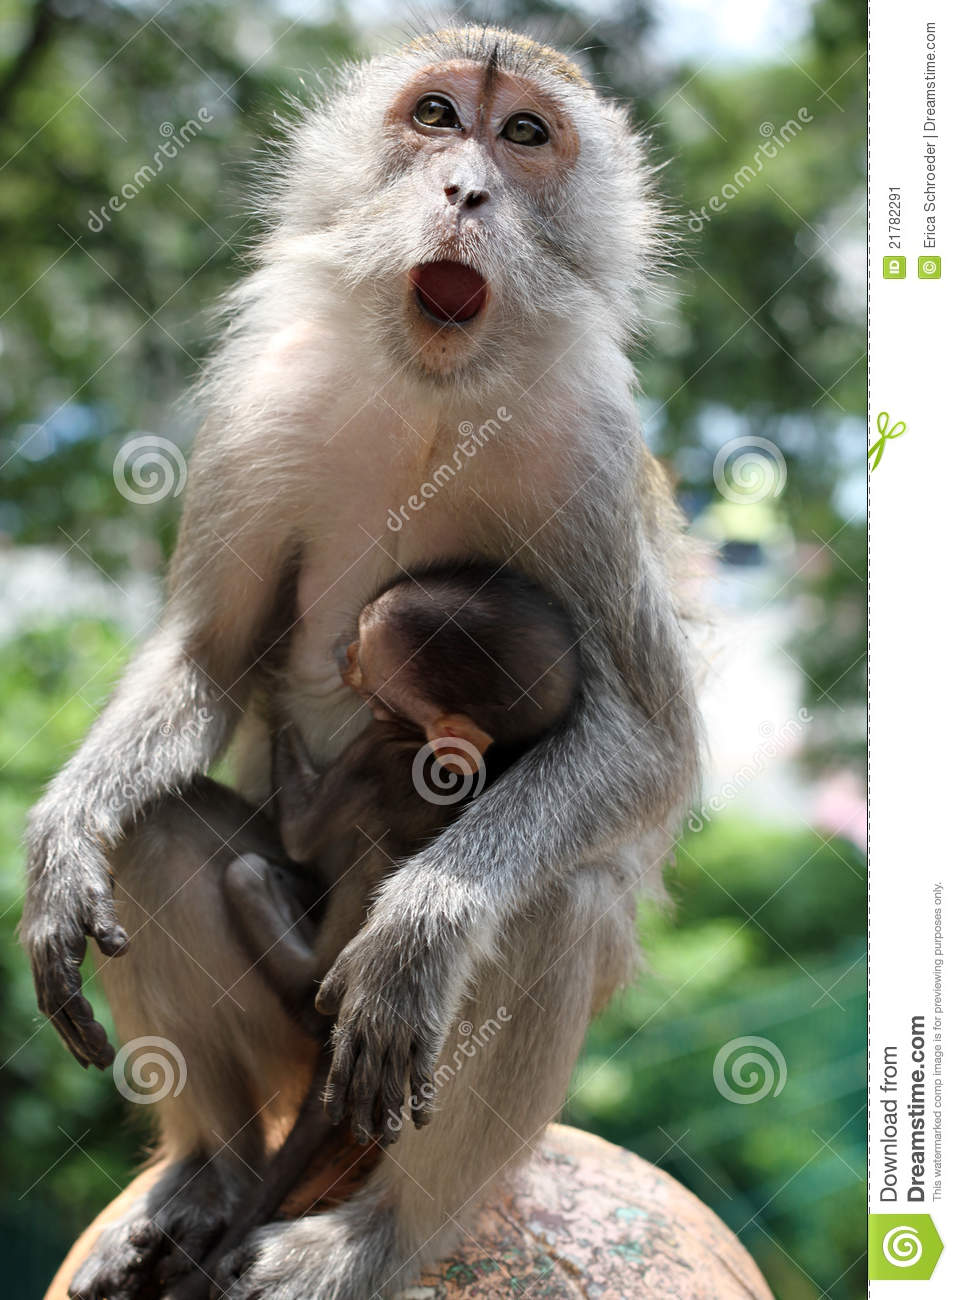 Mother Monkey With Baby Monkey In Arms Stock Image Image